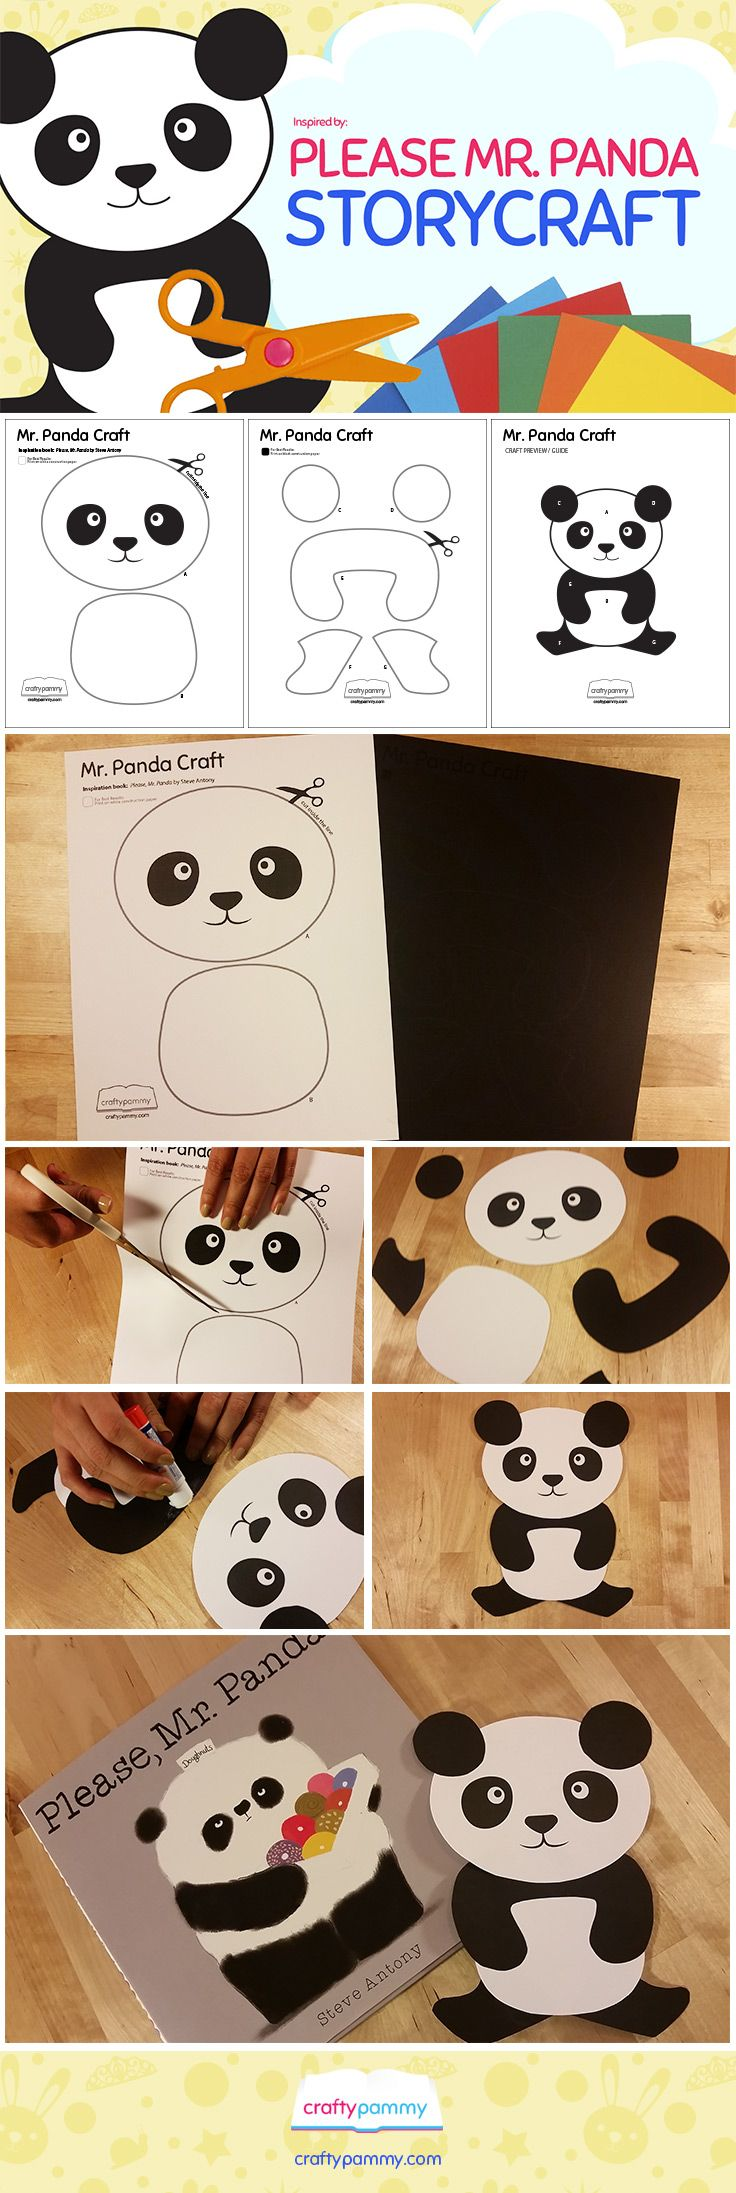 "Create a Panda craft using a free Craft template available at http://craftypammy.com/please-mr-panda-craft-template/ You can create this craft along with Steve Antony's book ""Please Mr. Panda"""